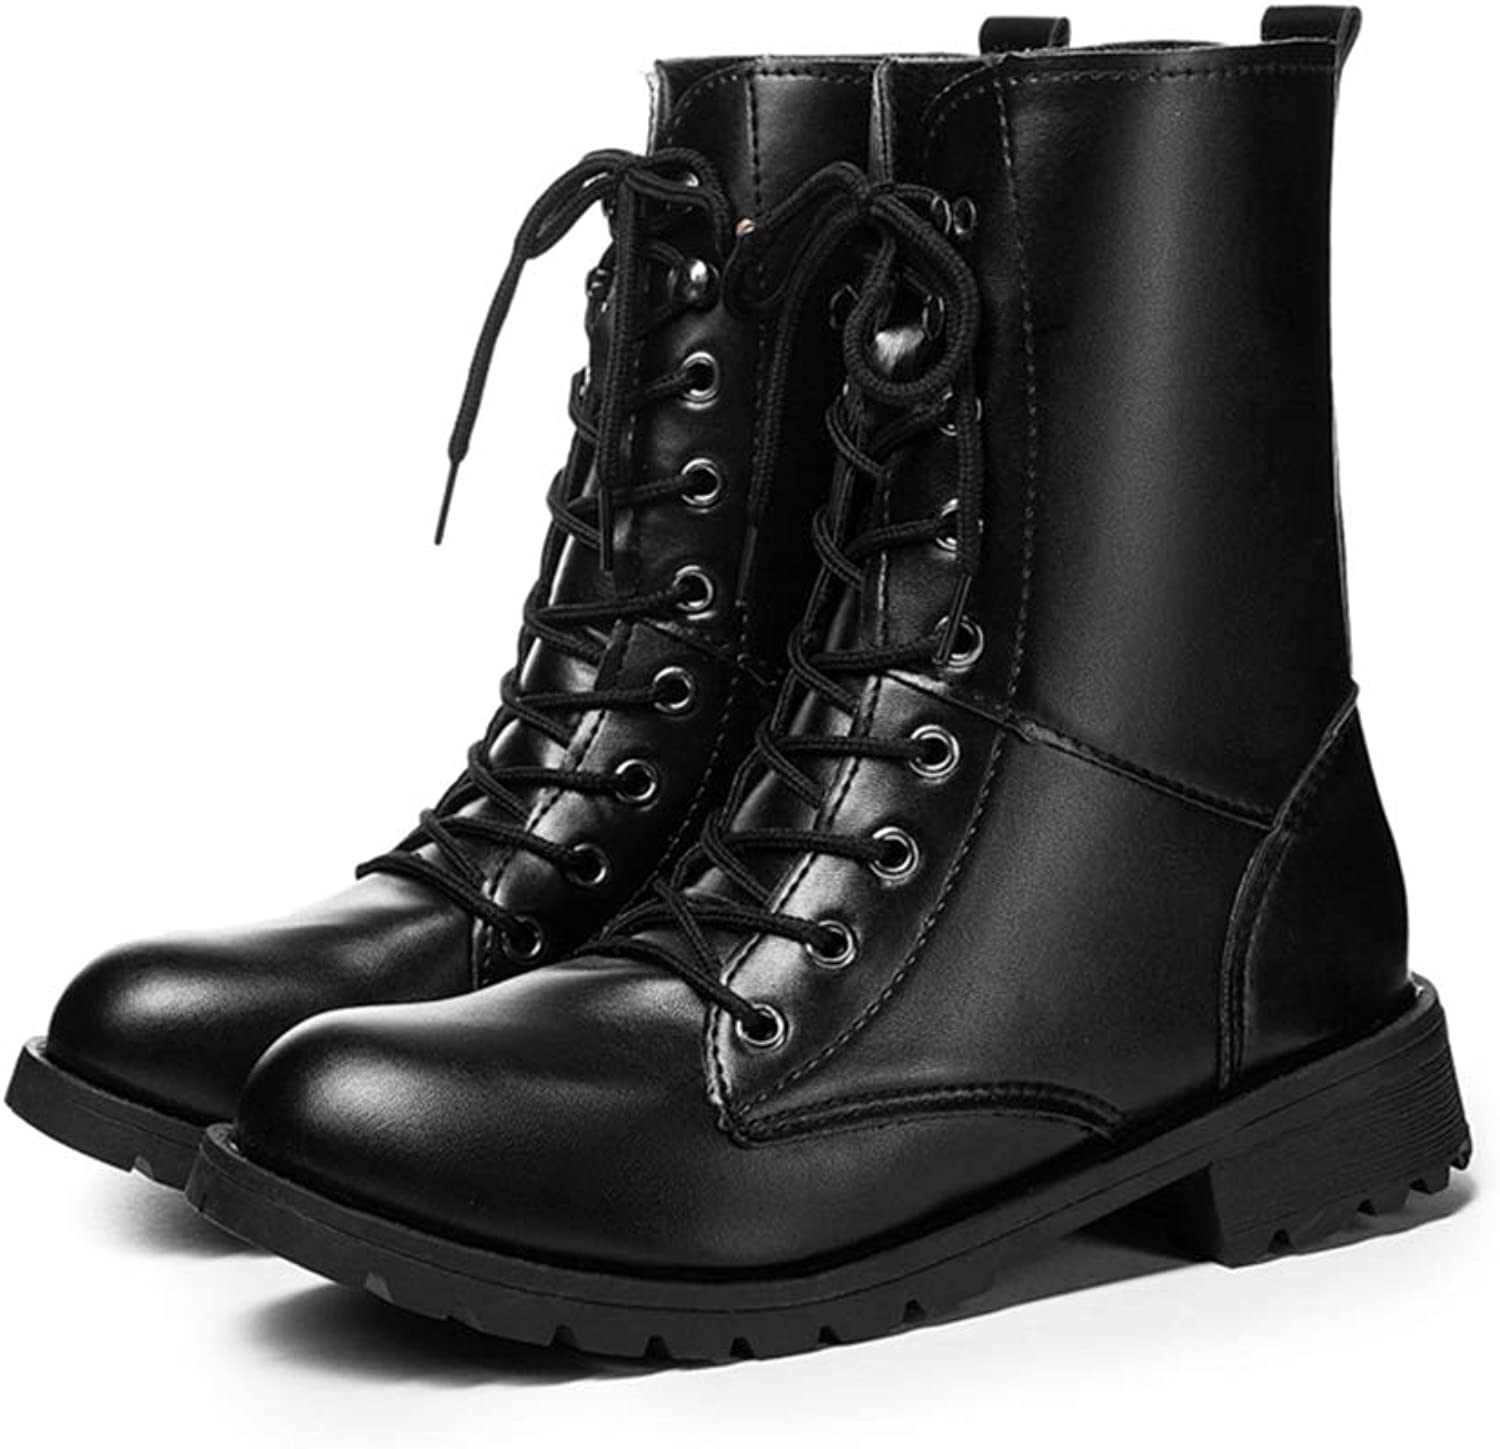 T-JULY Women PU Leather Boots Low Heel Winter shoes Couples Motorcycle Ankle Boots Female Plus Size shoes